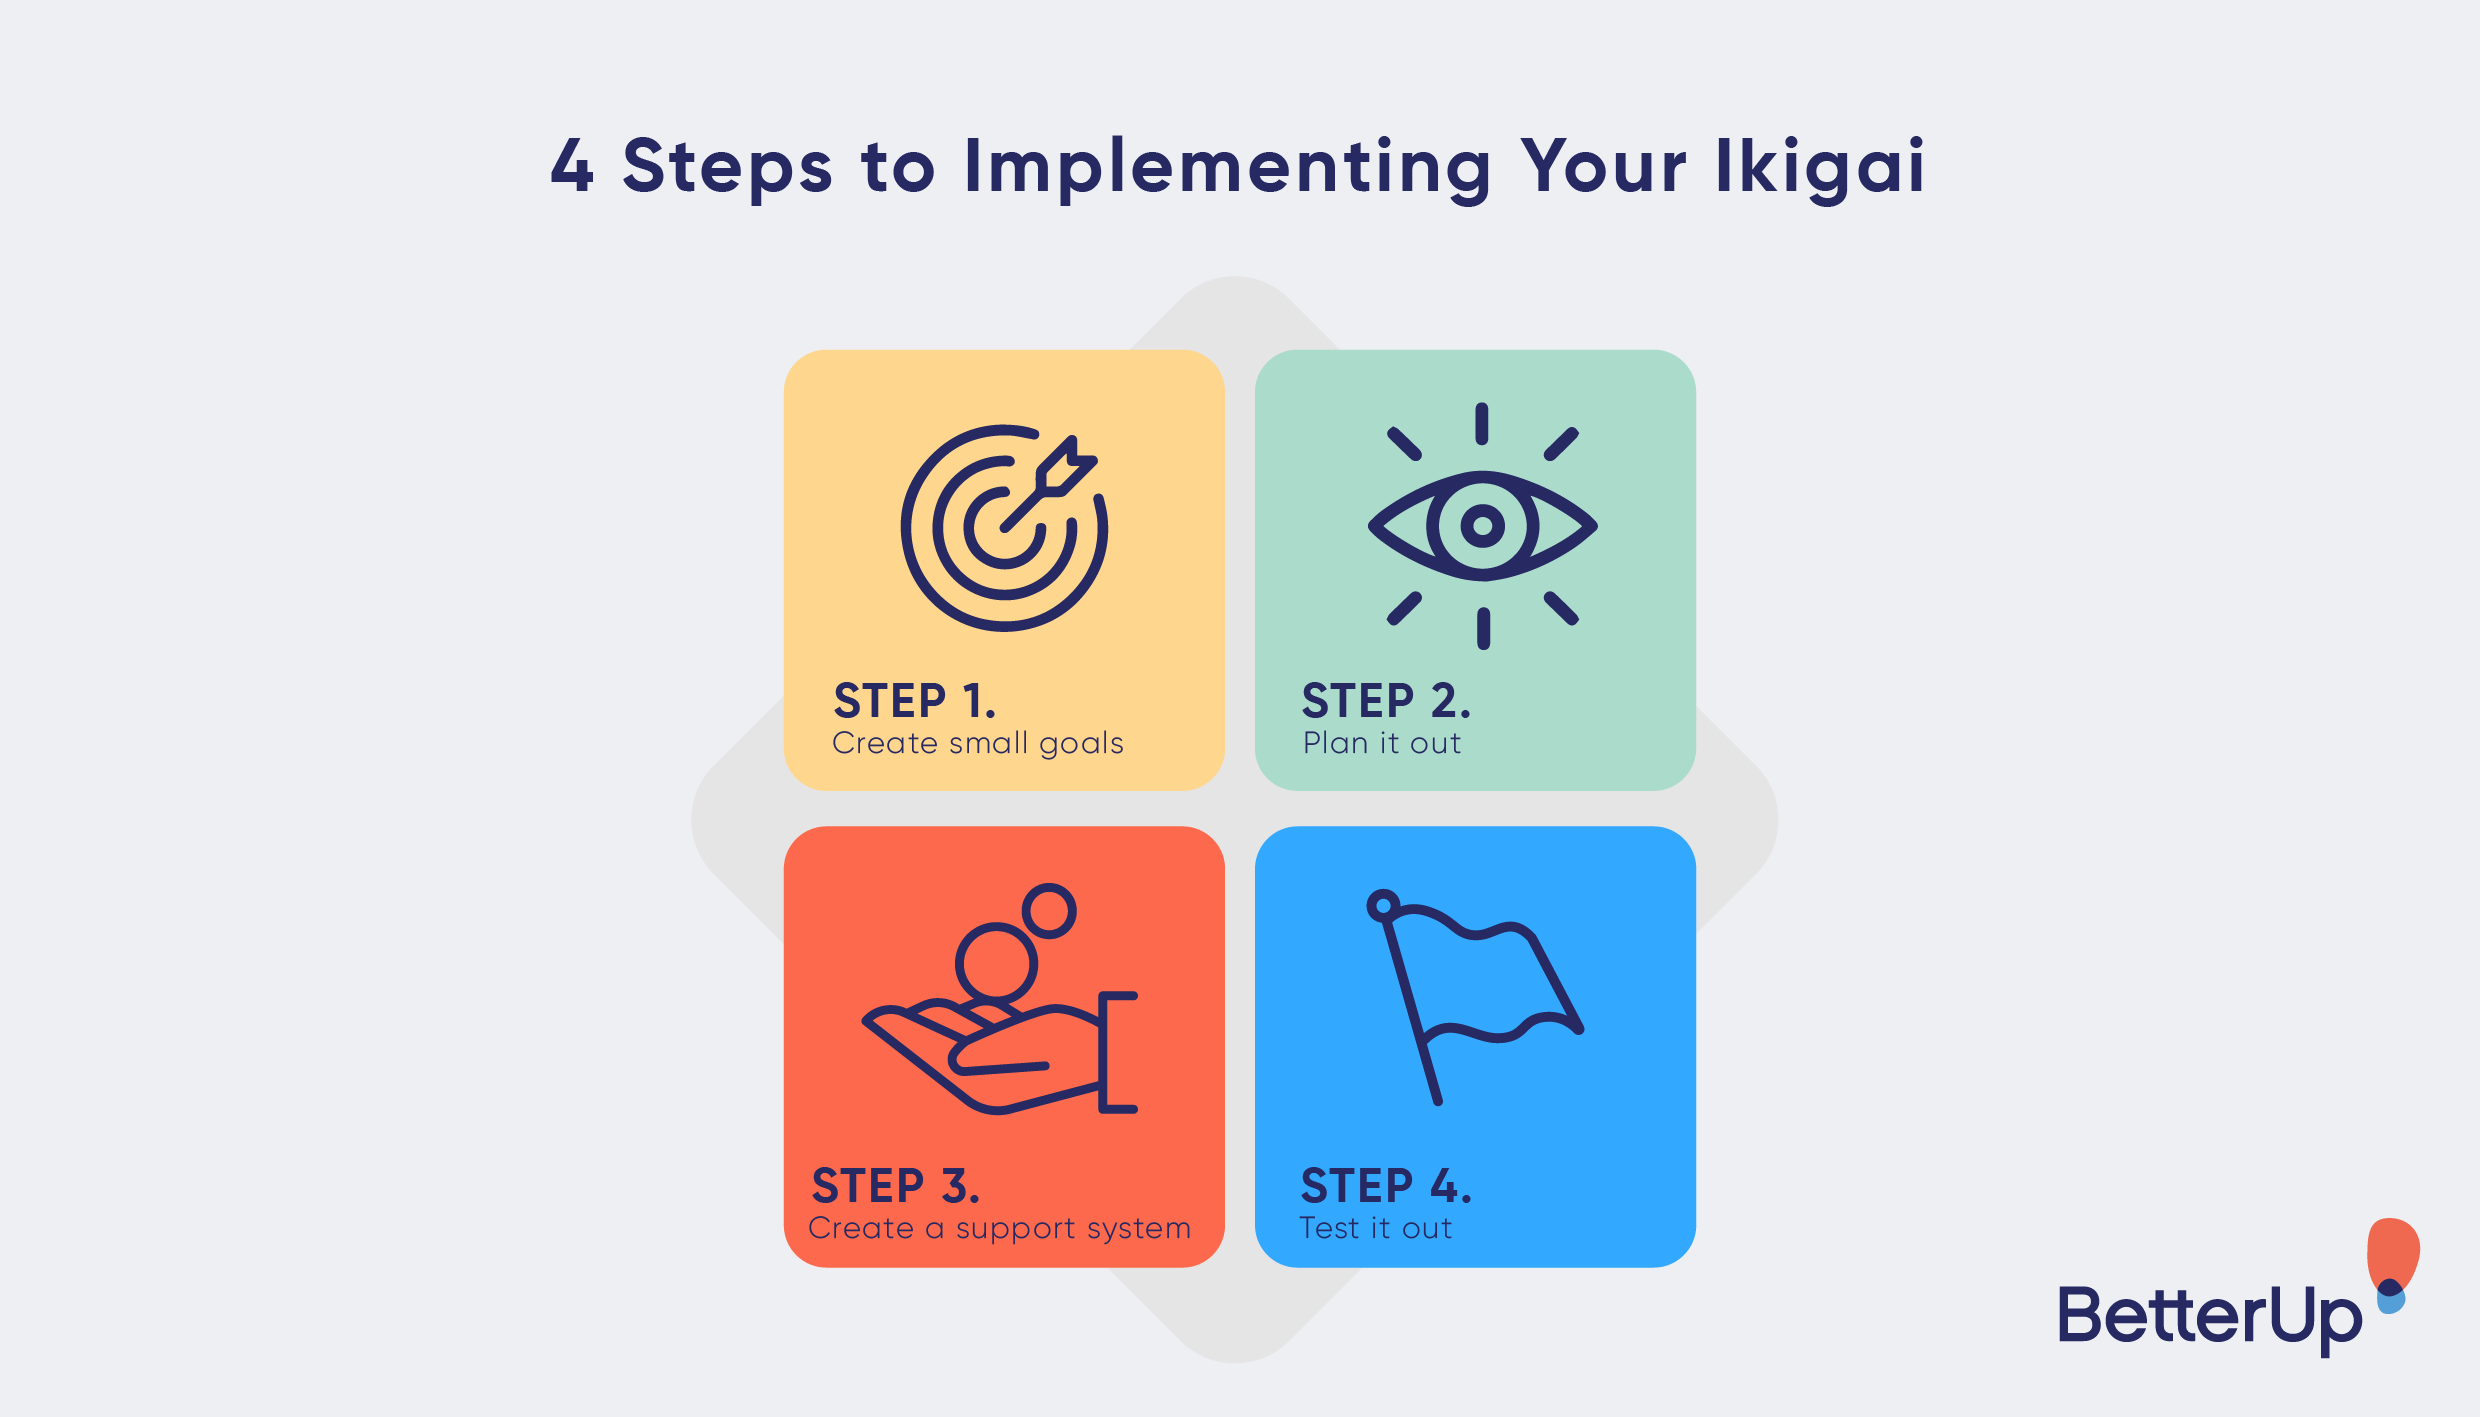 4 steps to embracing your ikigai